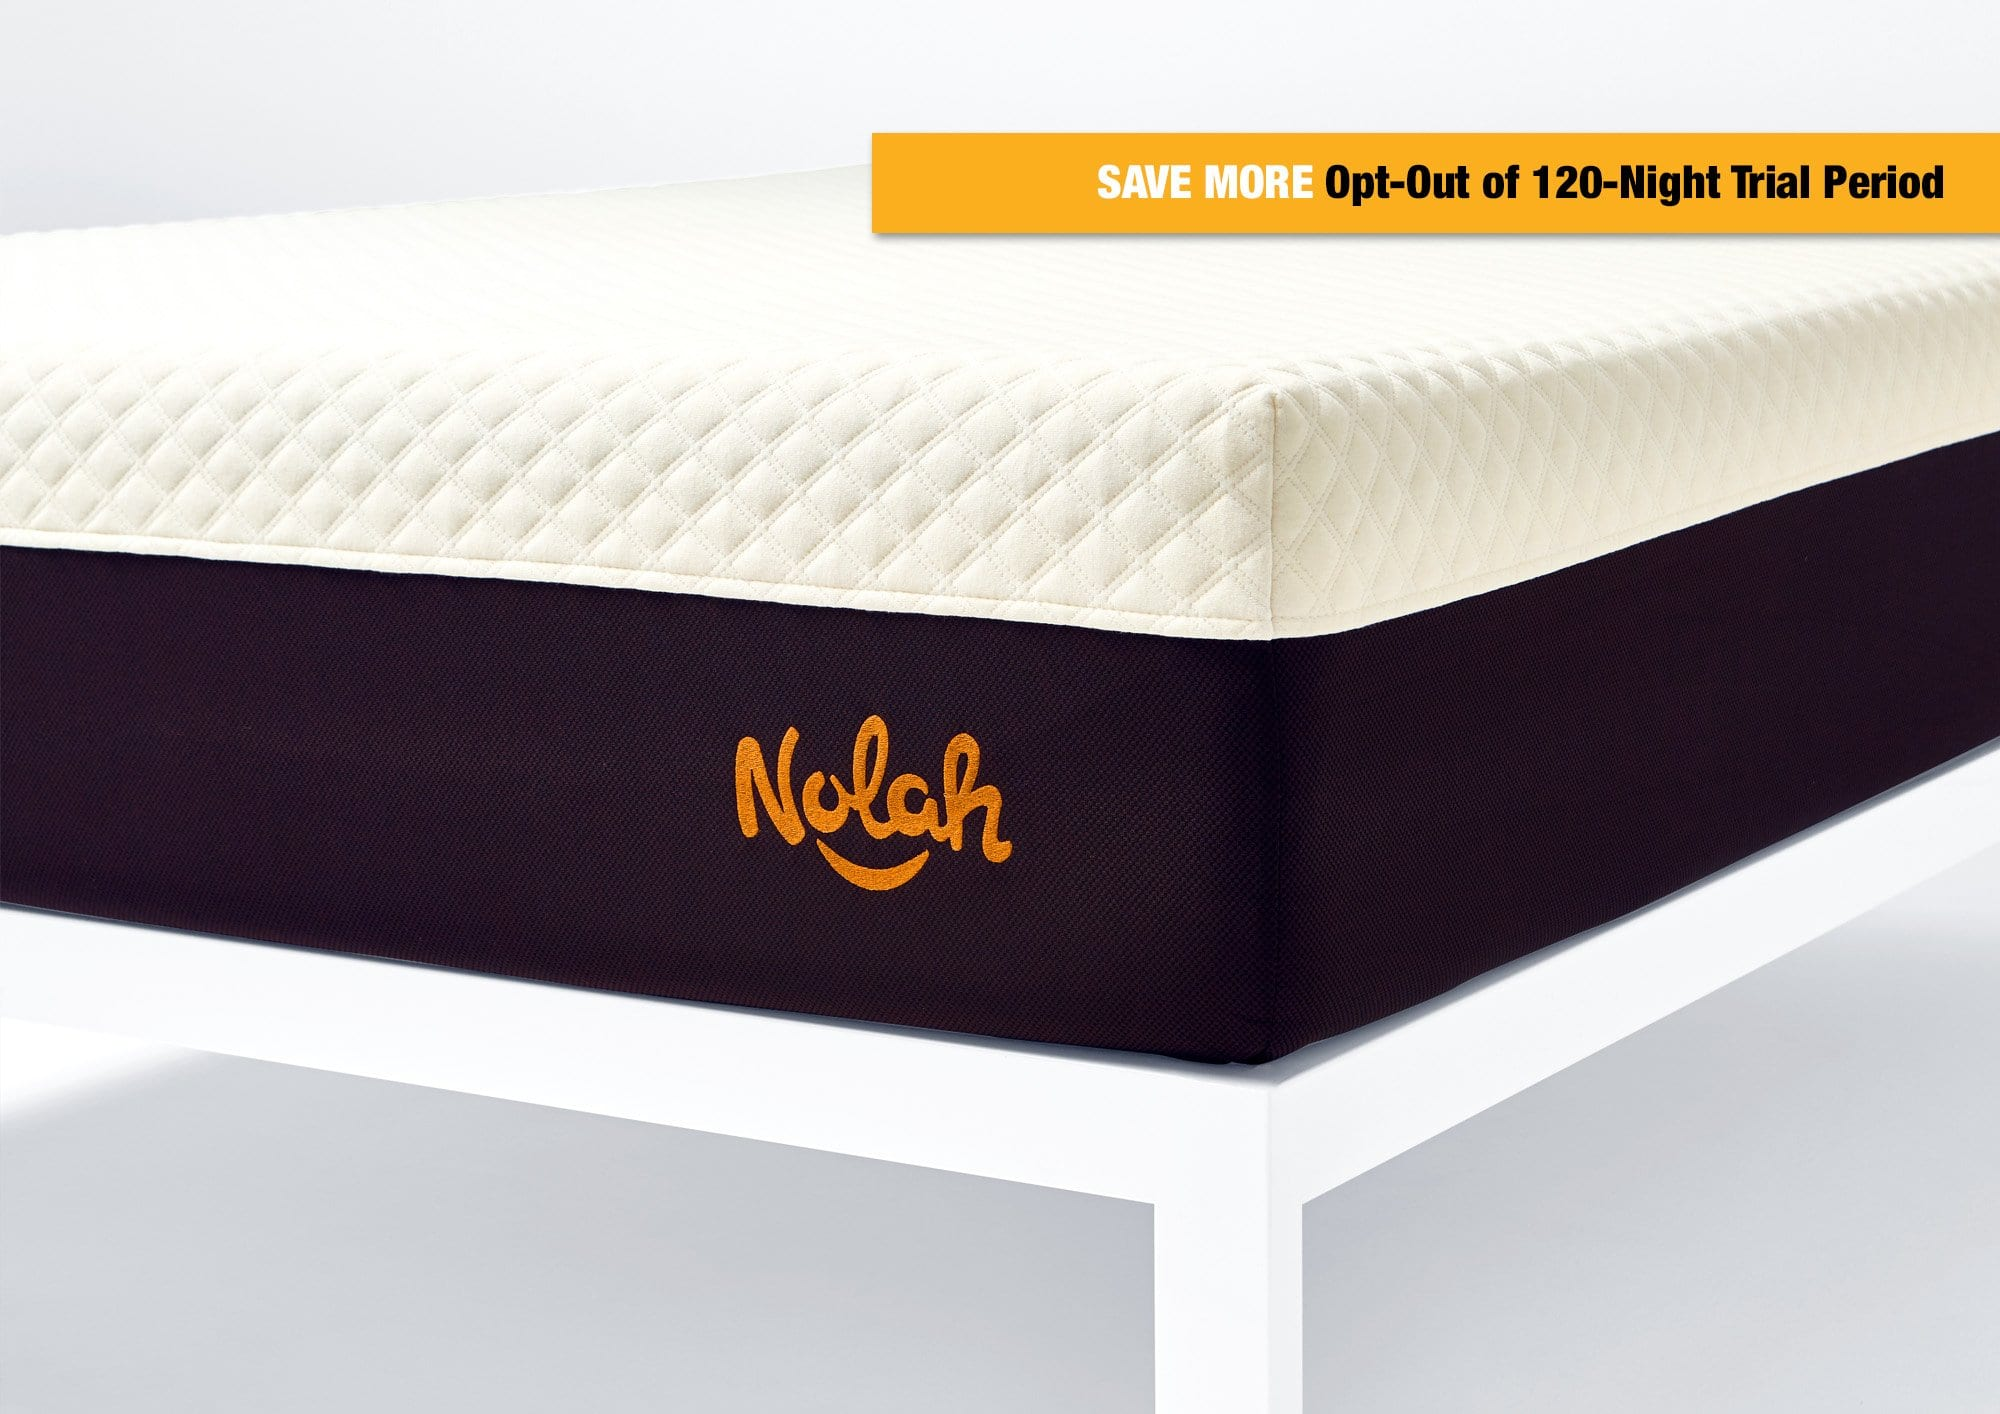 Nolah 10 mattress review – What do they say?